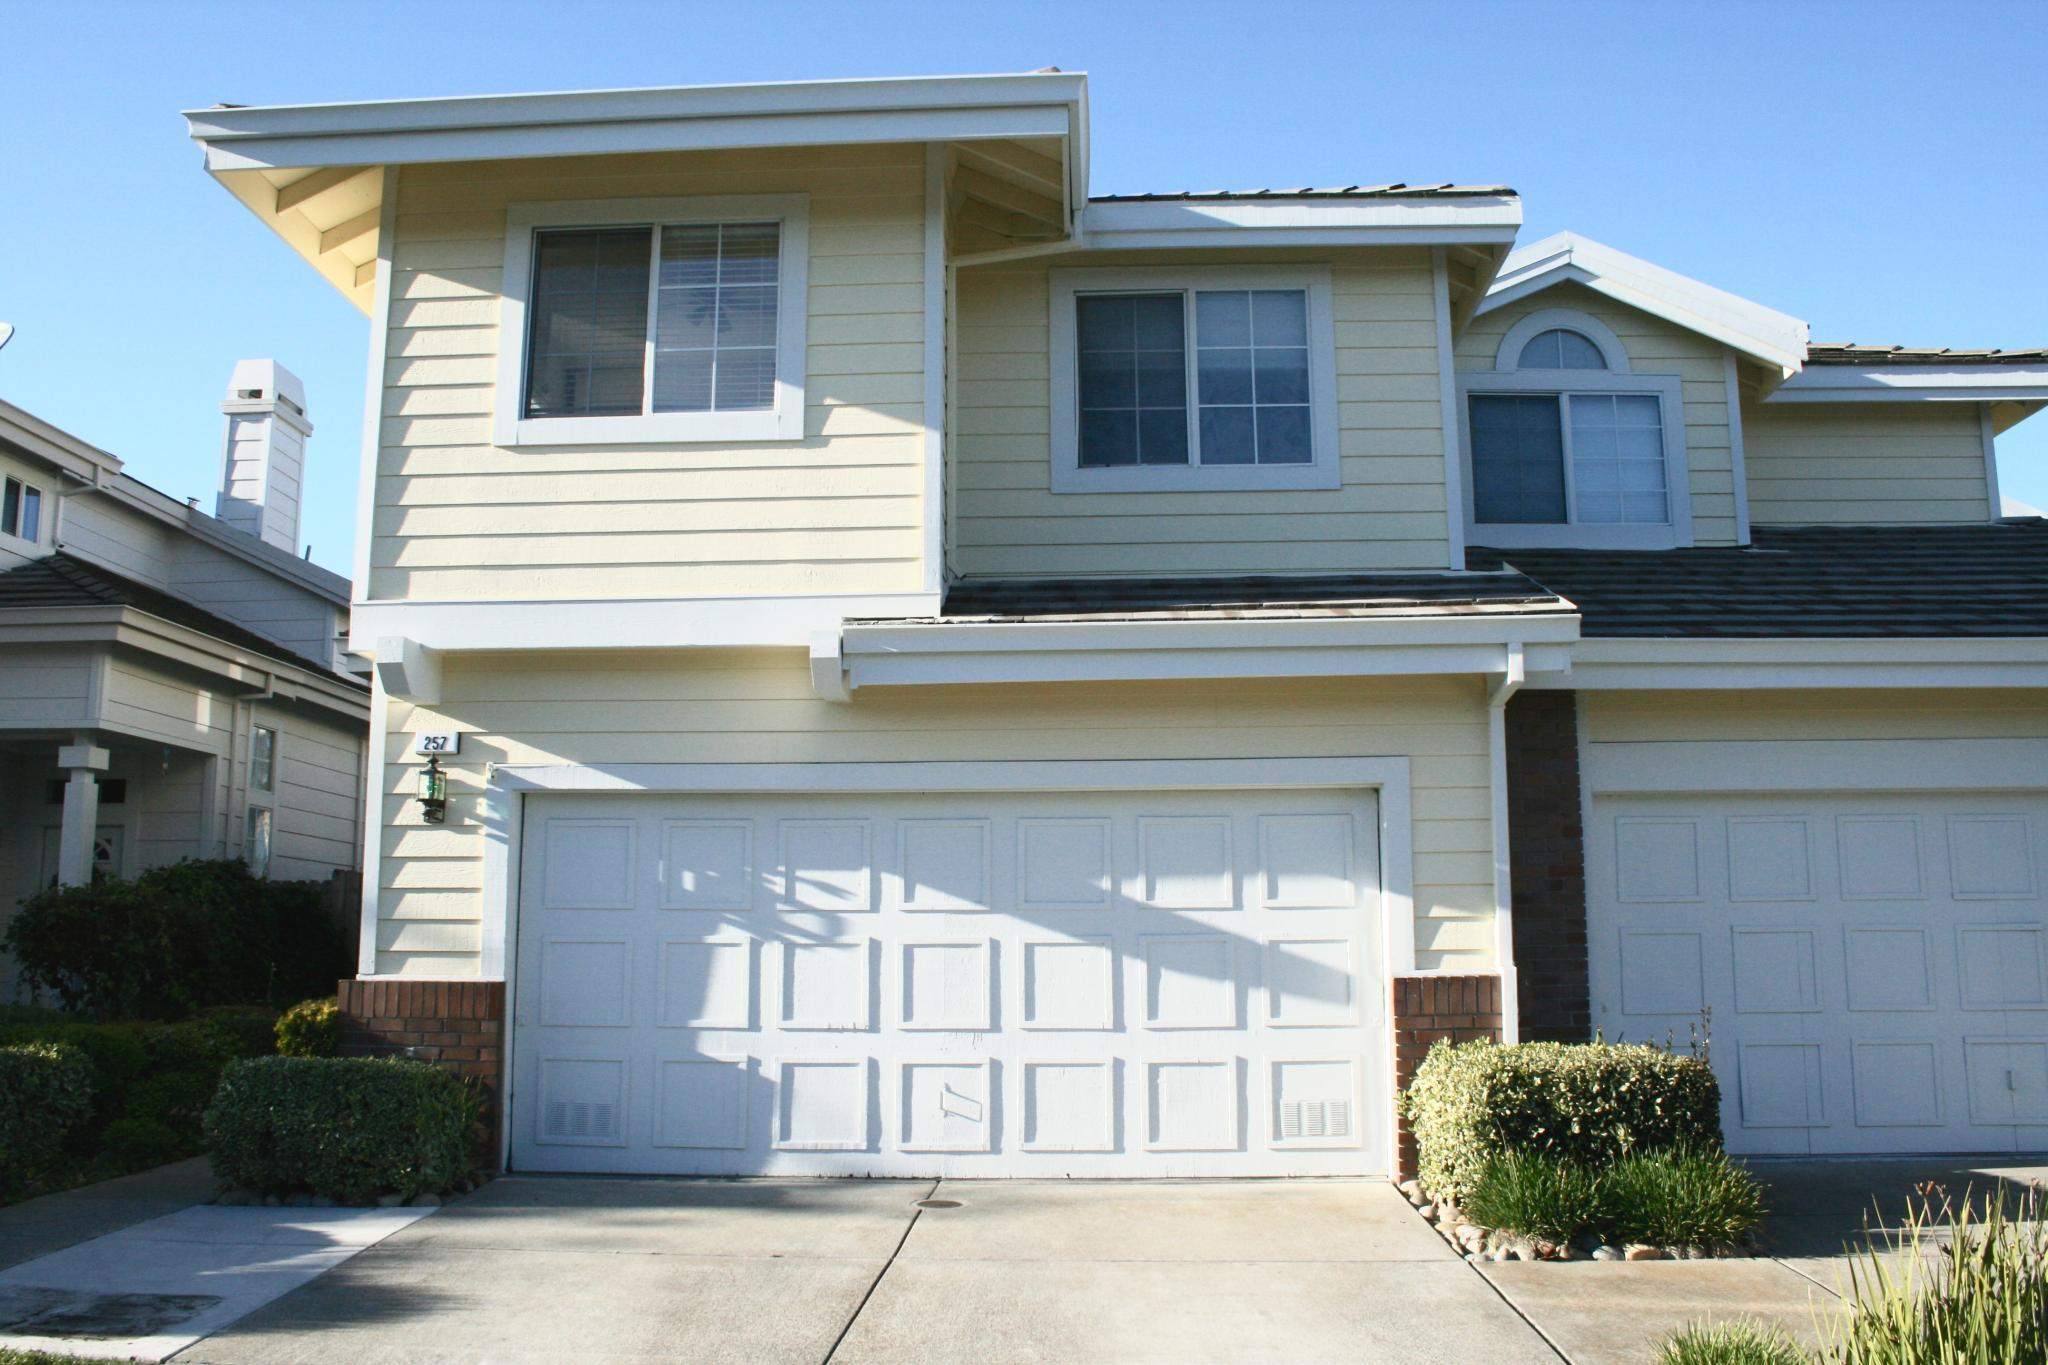 257 Scotts Vly For Rent - Hercules, CA | Trulia